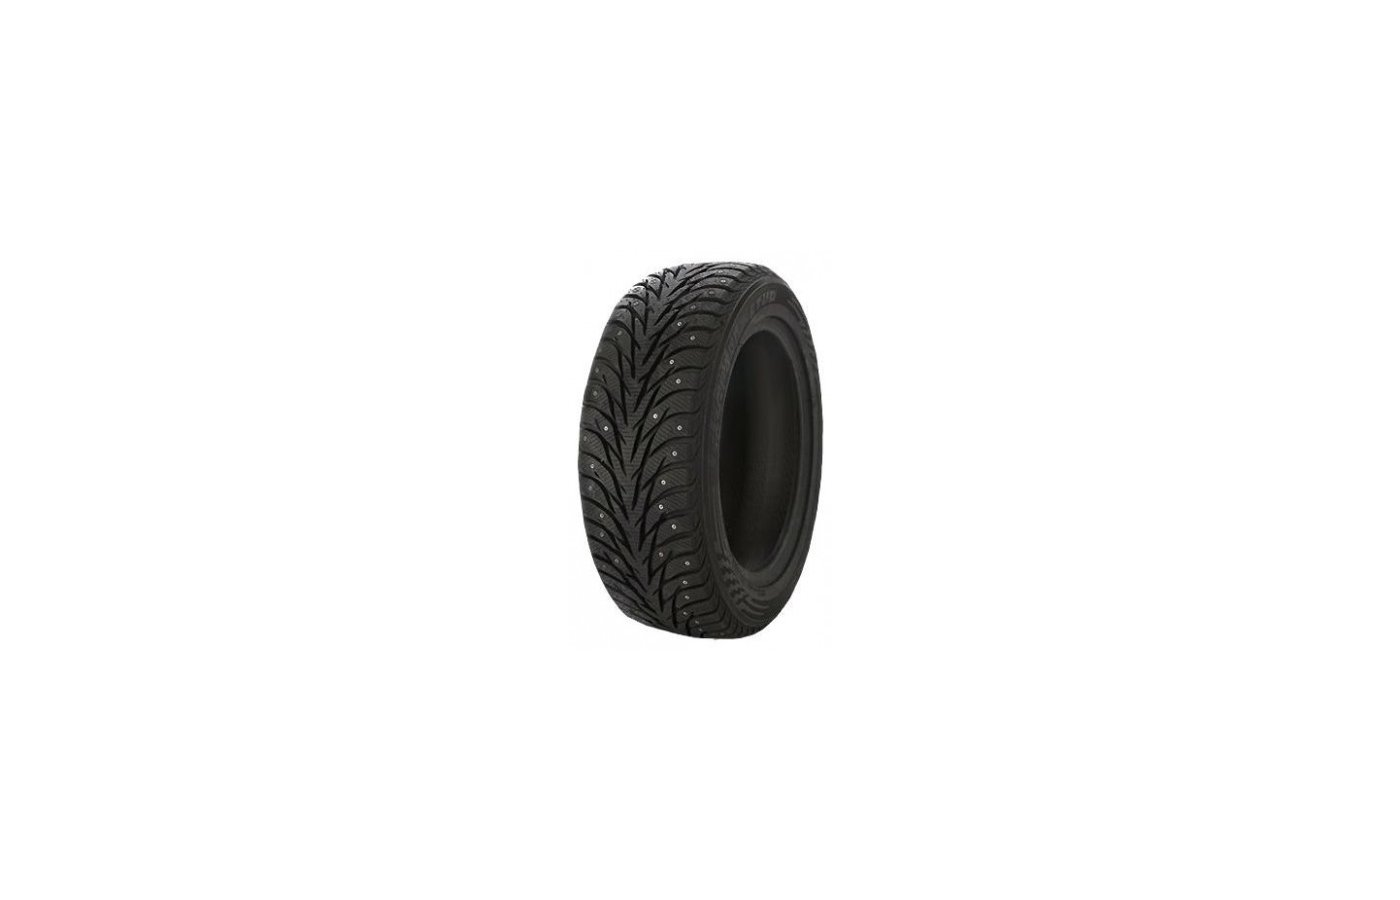 Шина Yokohama Ice Guard IG35 Plus 235/45 R18 TL 98T шип